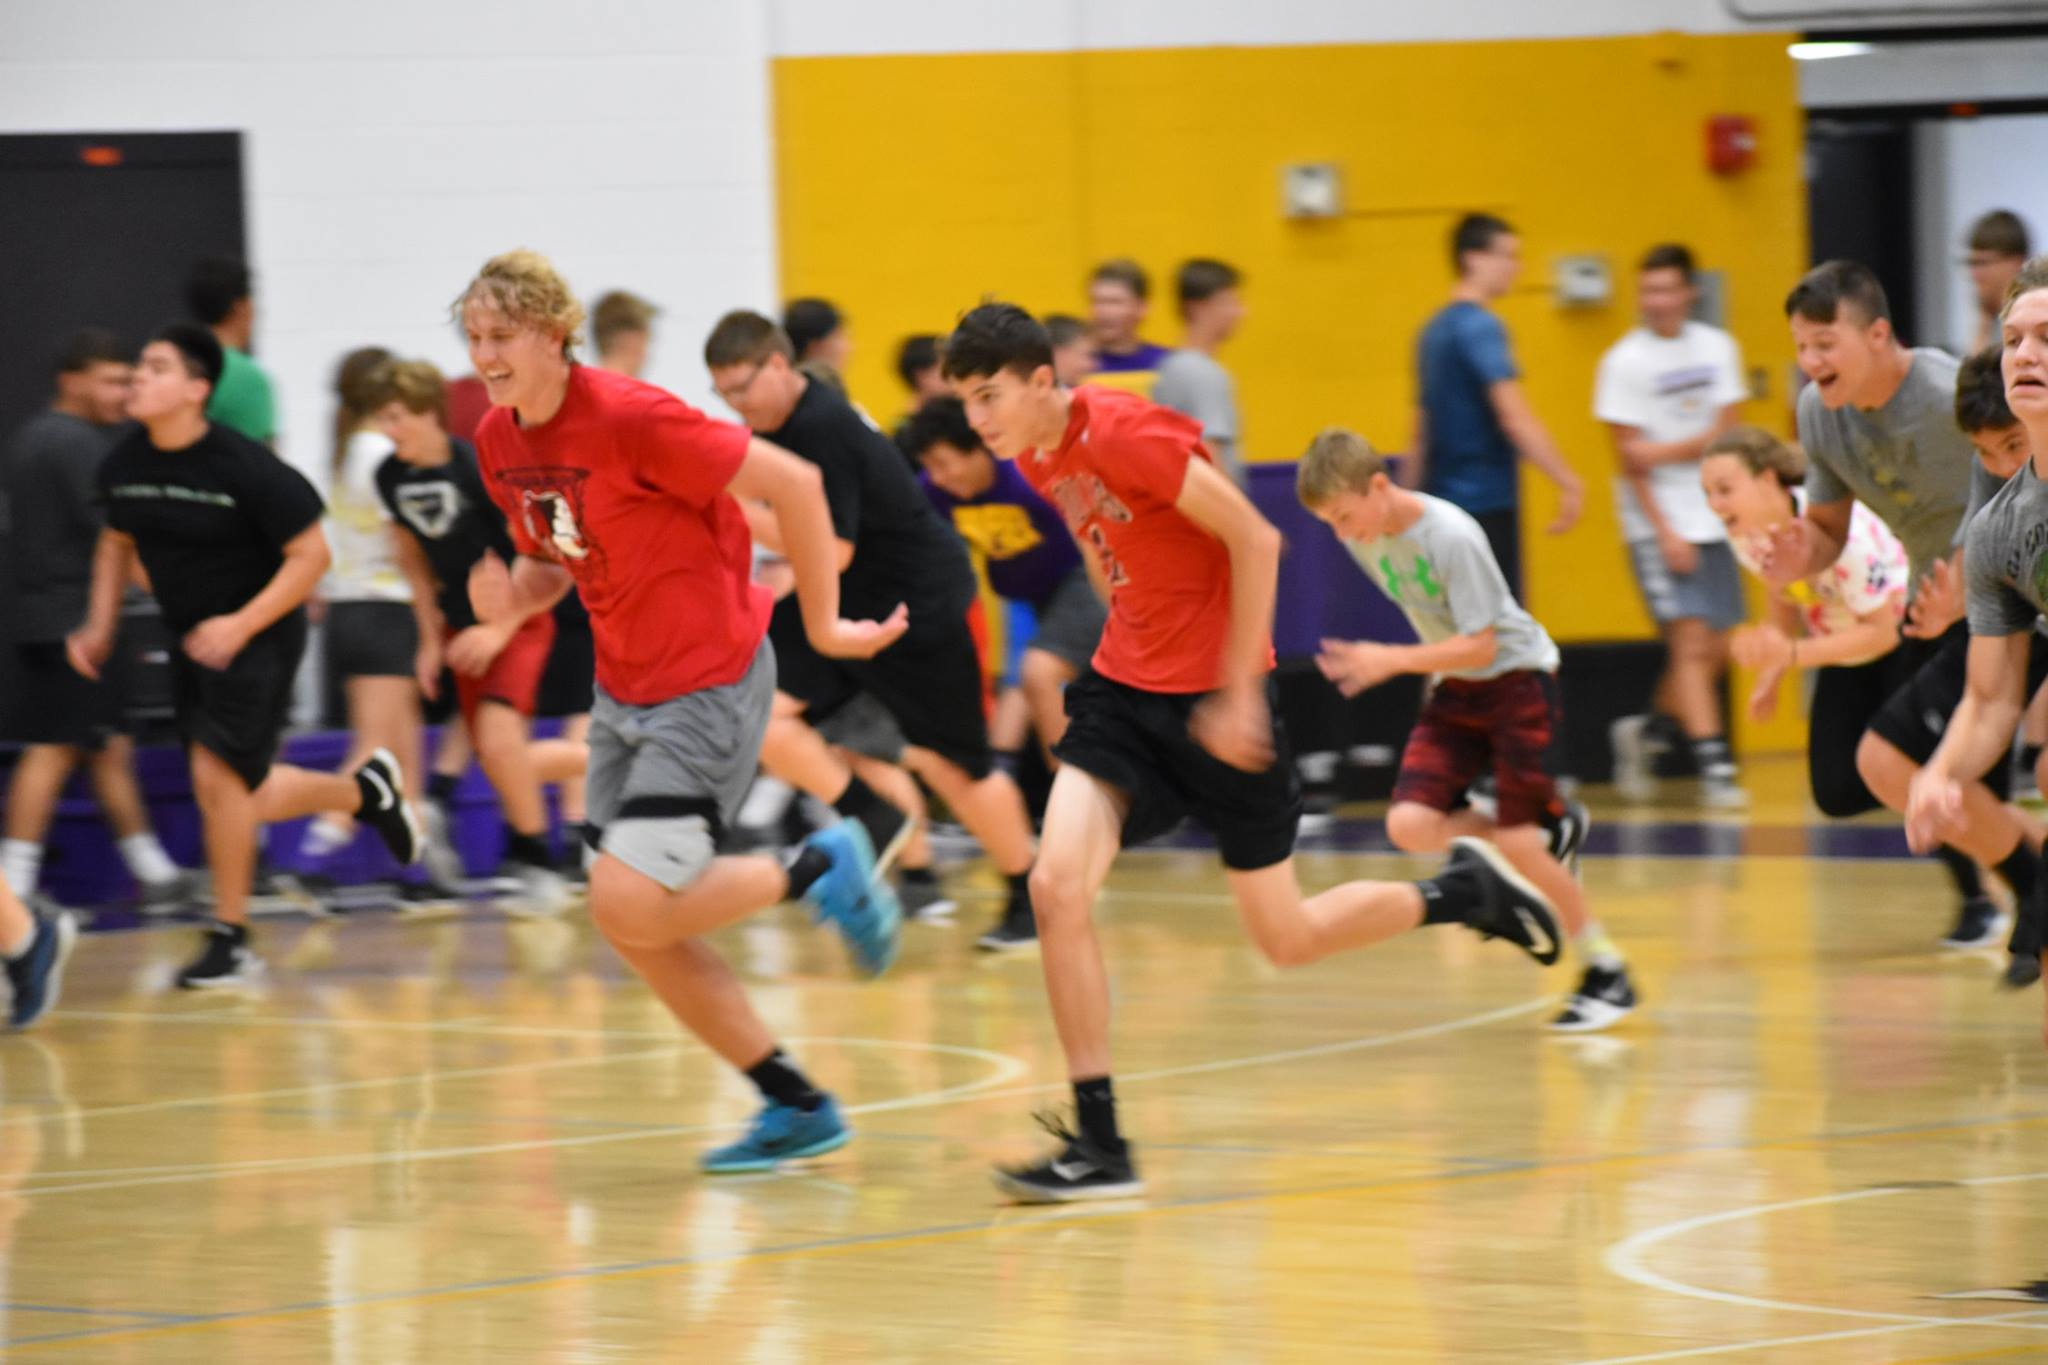 students running across the gym